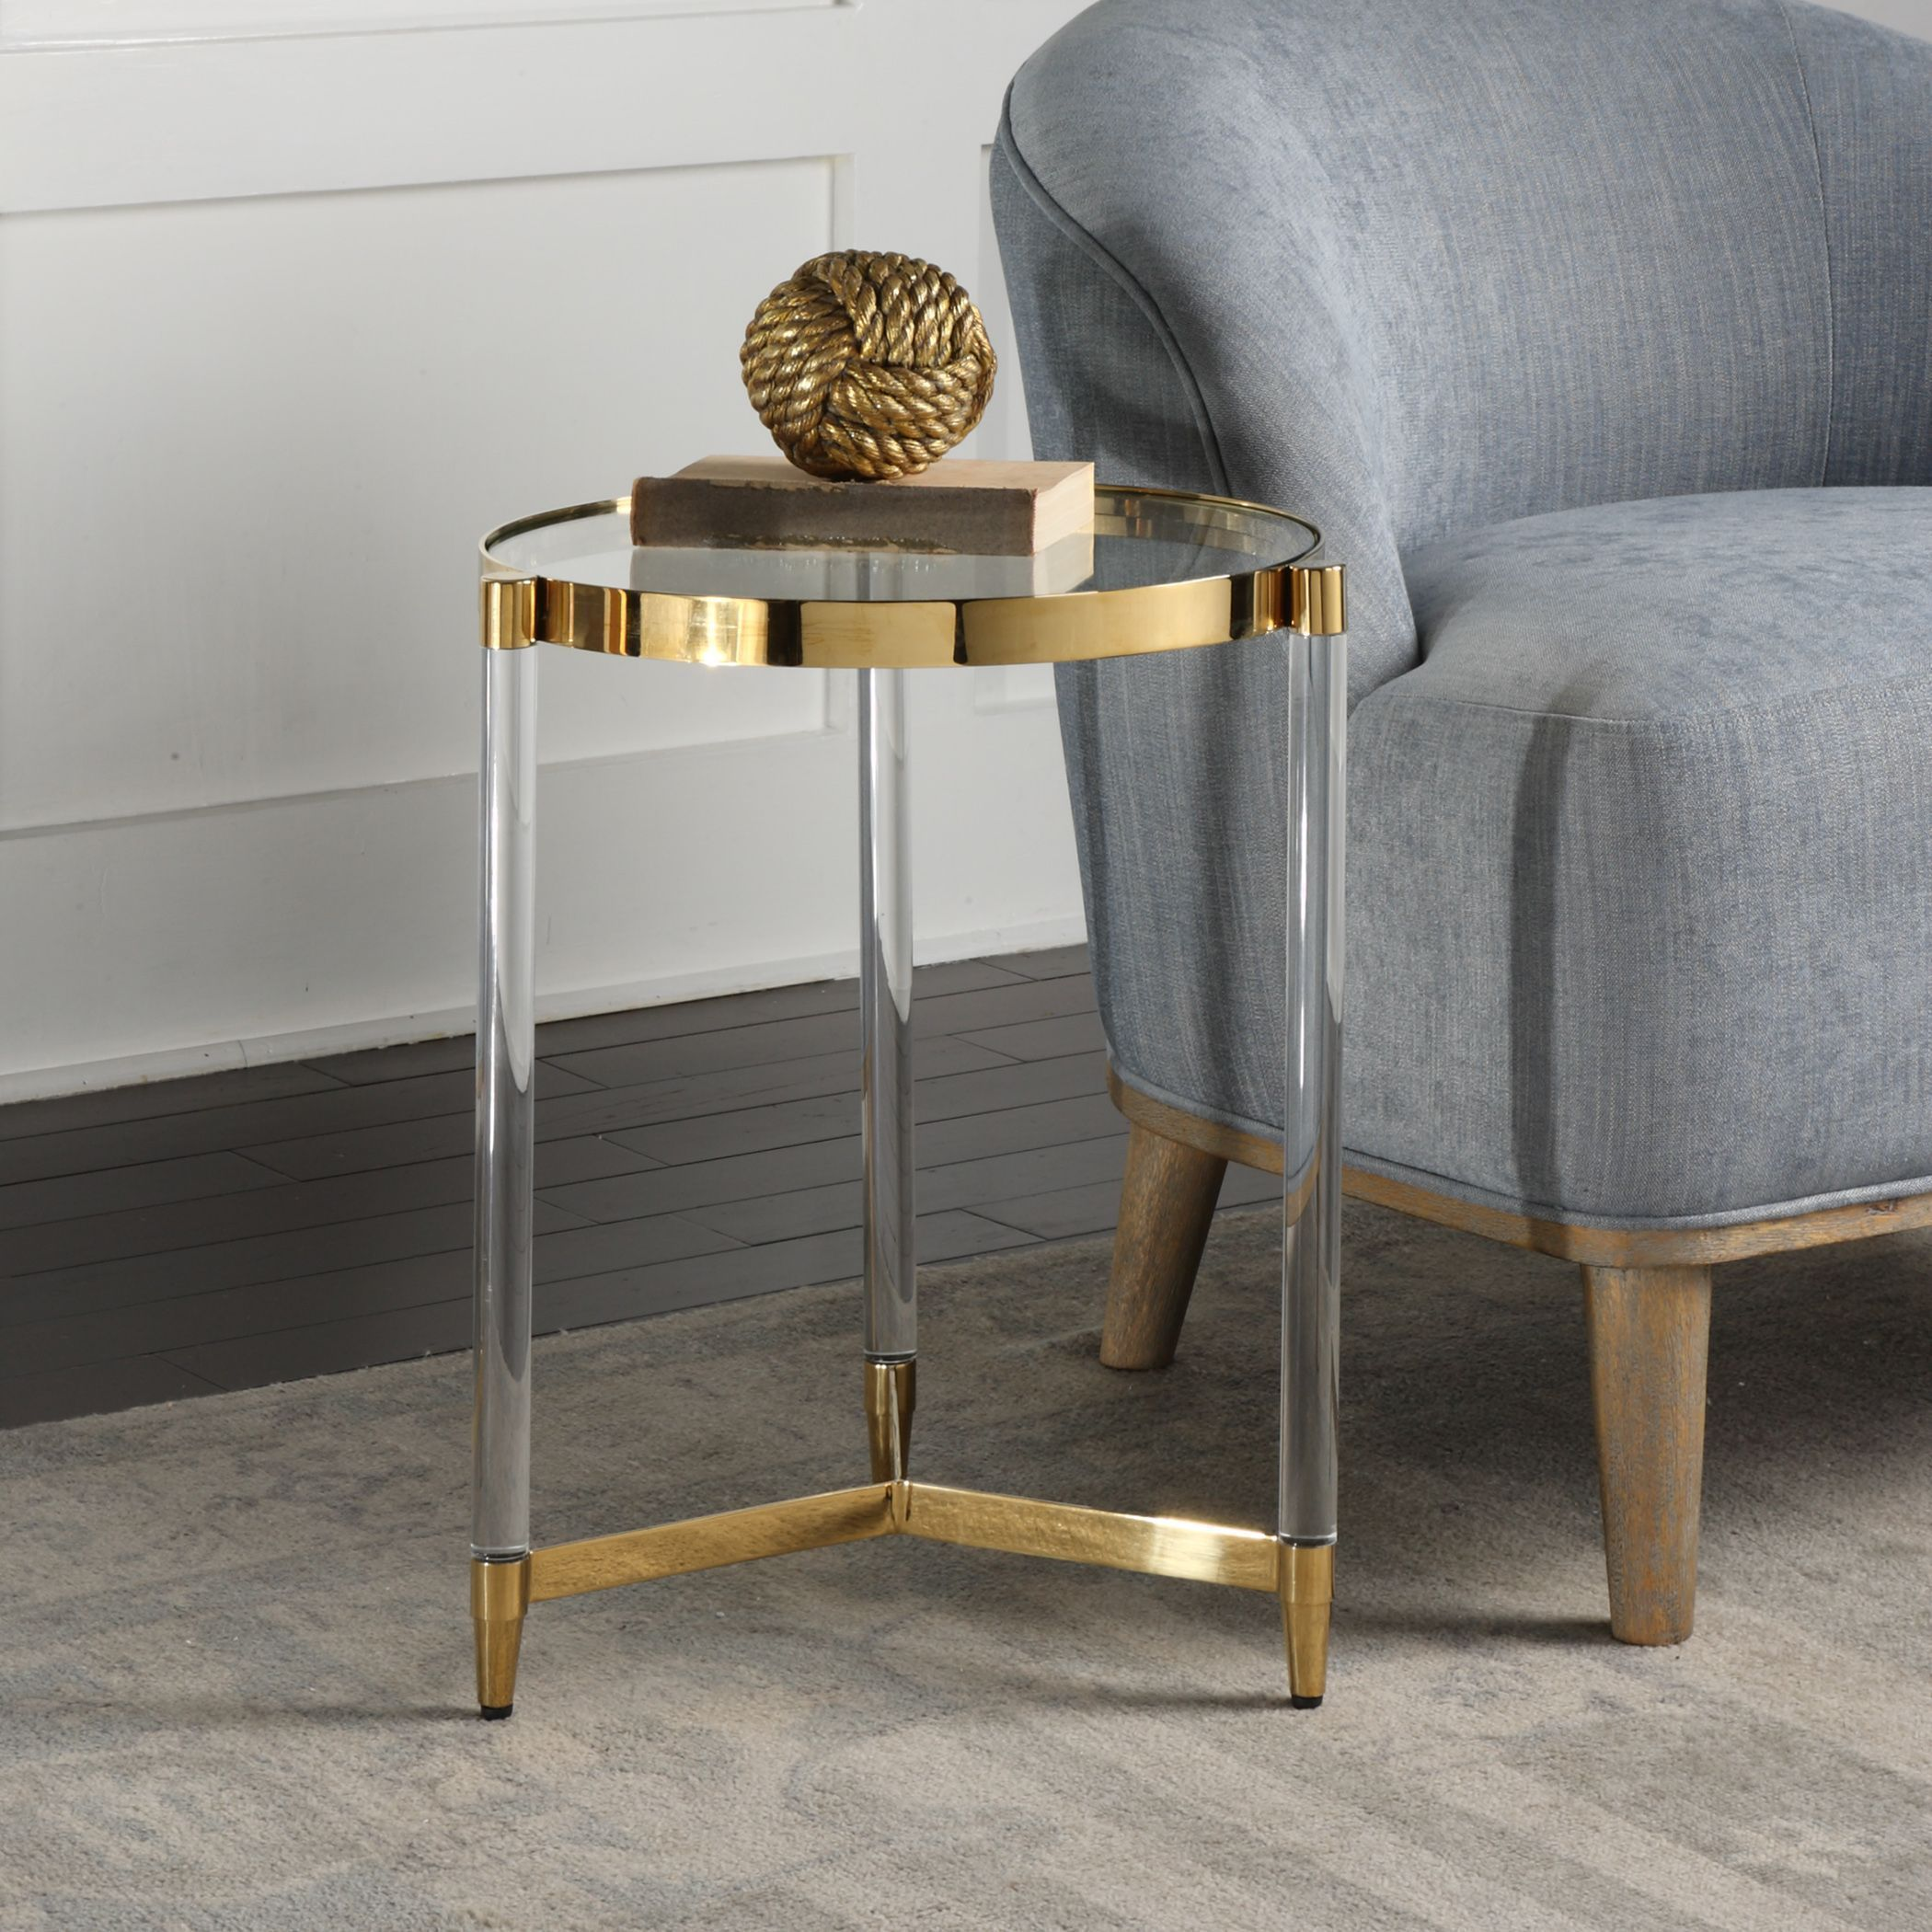 excellent glass accent tables living room bench ott modern top table cabinet metal chro storage hawthorne furniture threshold kijiji small outdoor and avenue contemporary bronze